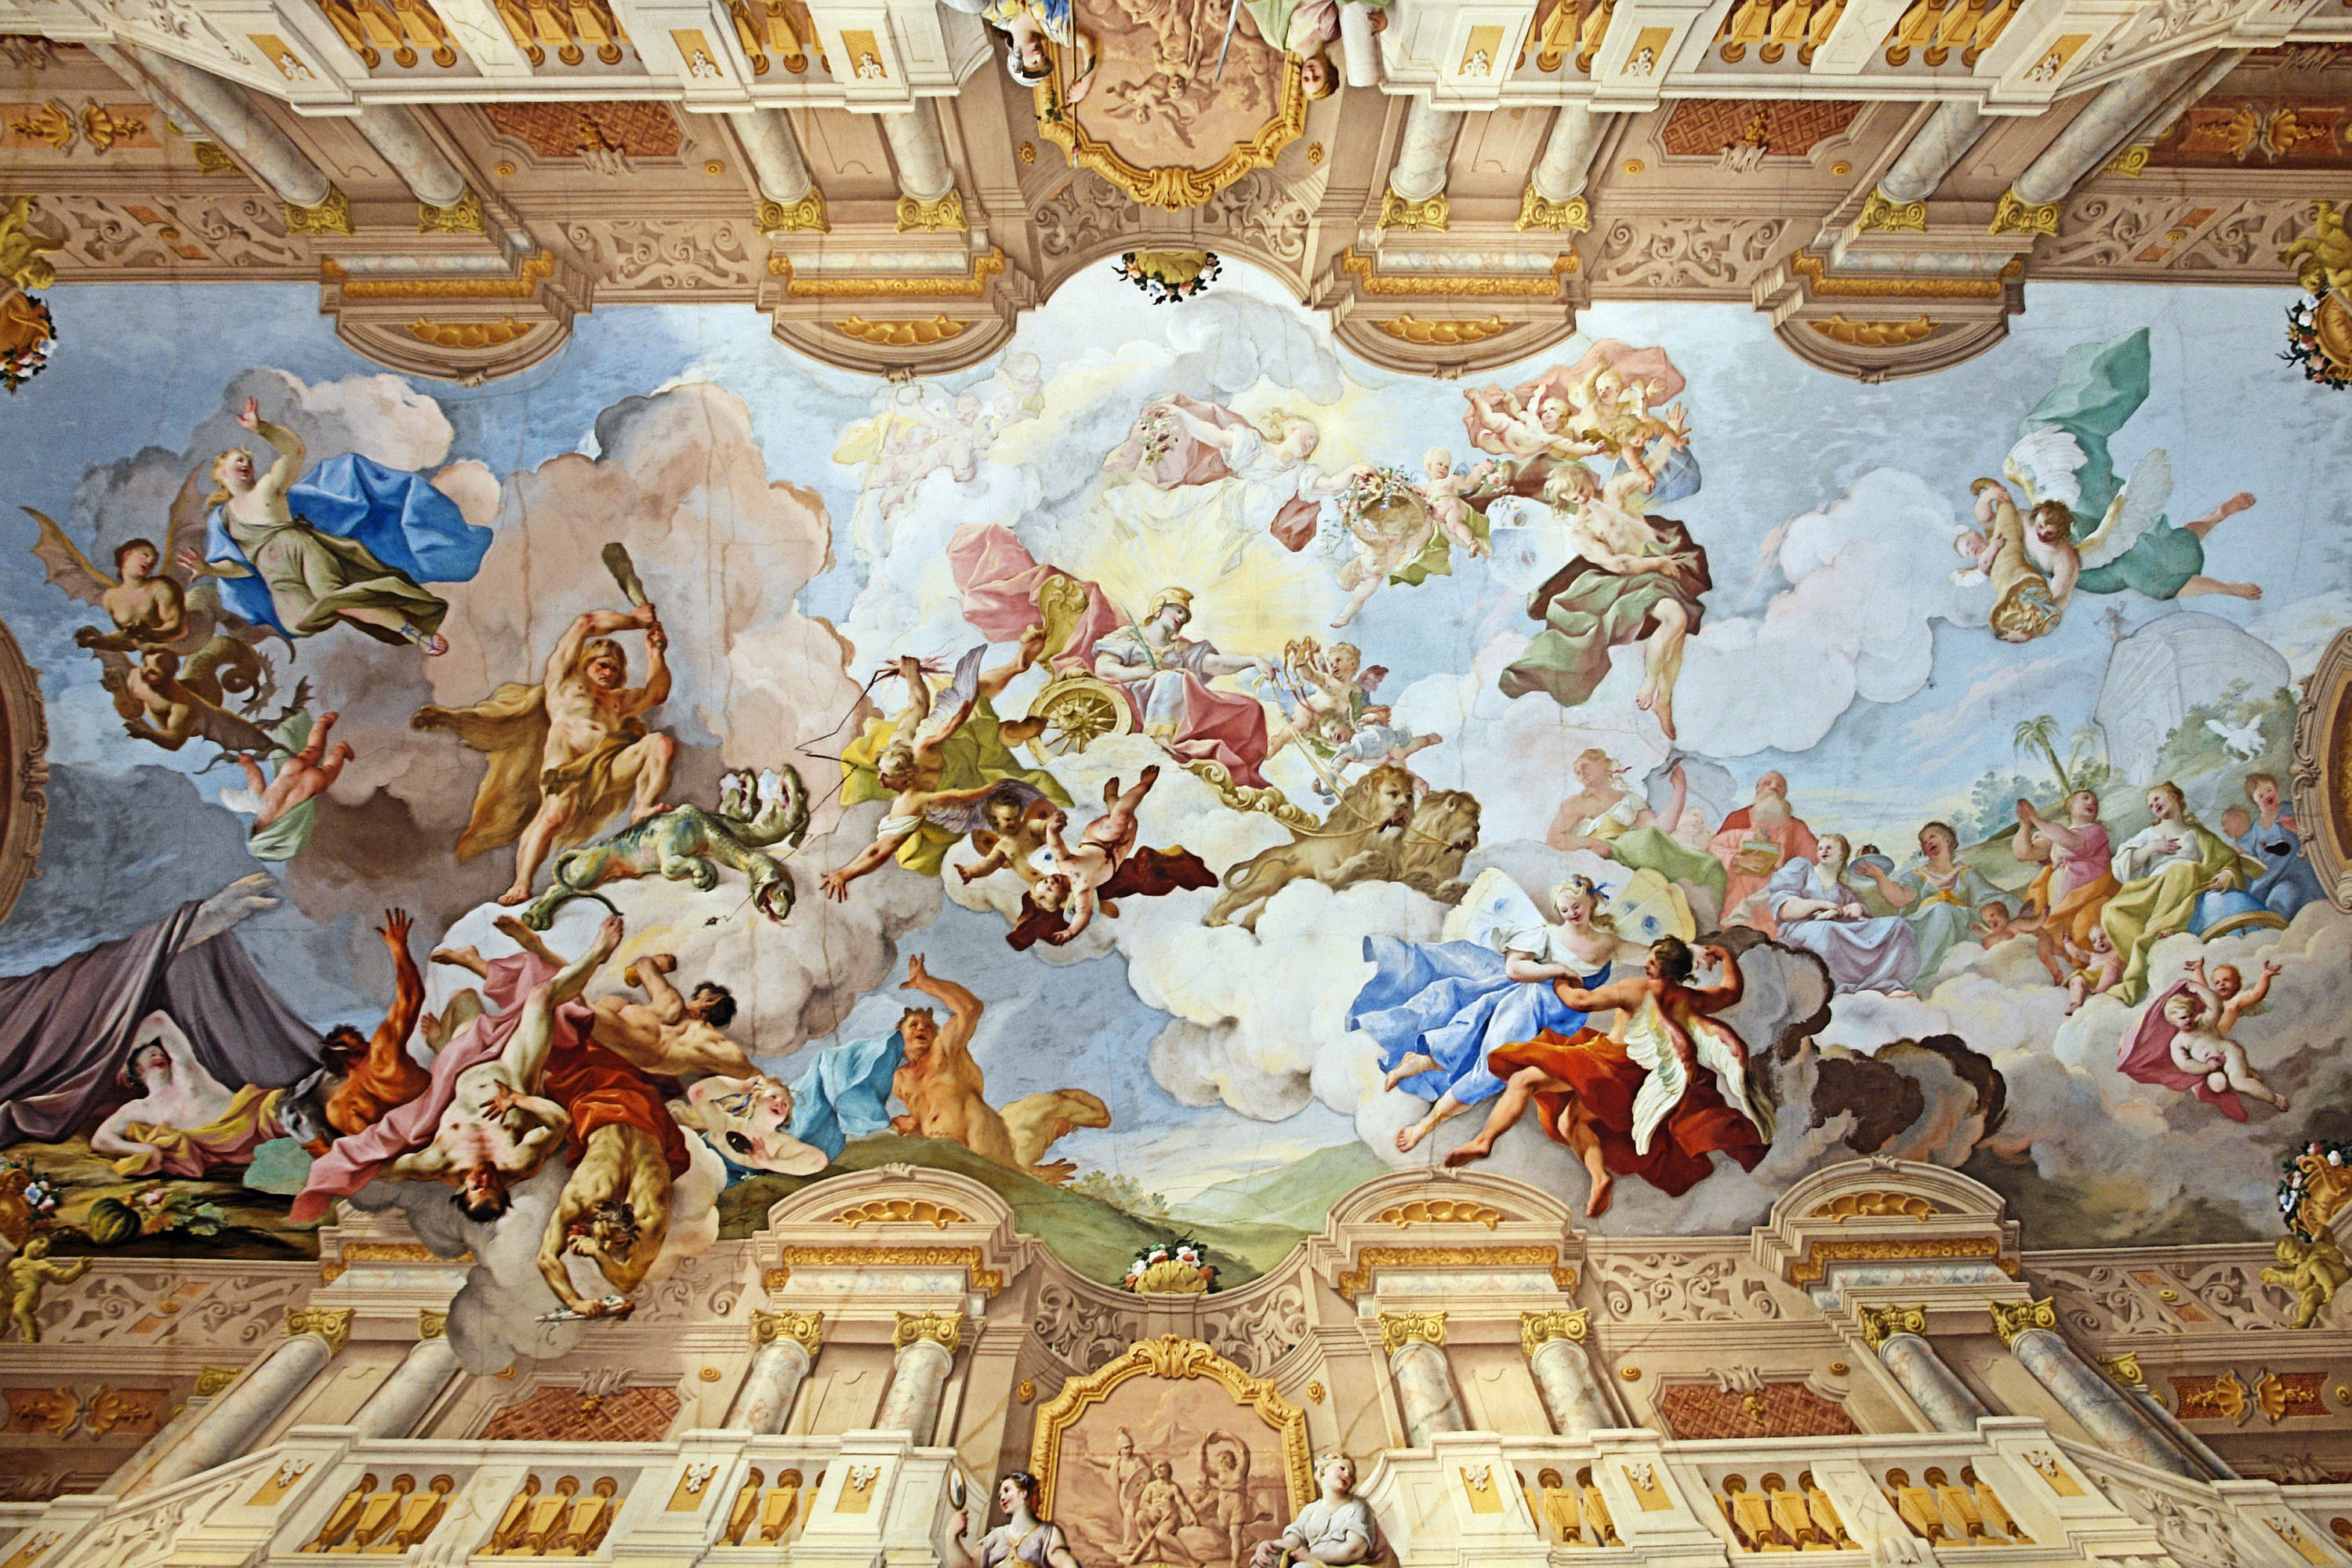 File:Ceiling painting of the Marble Hall